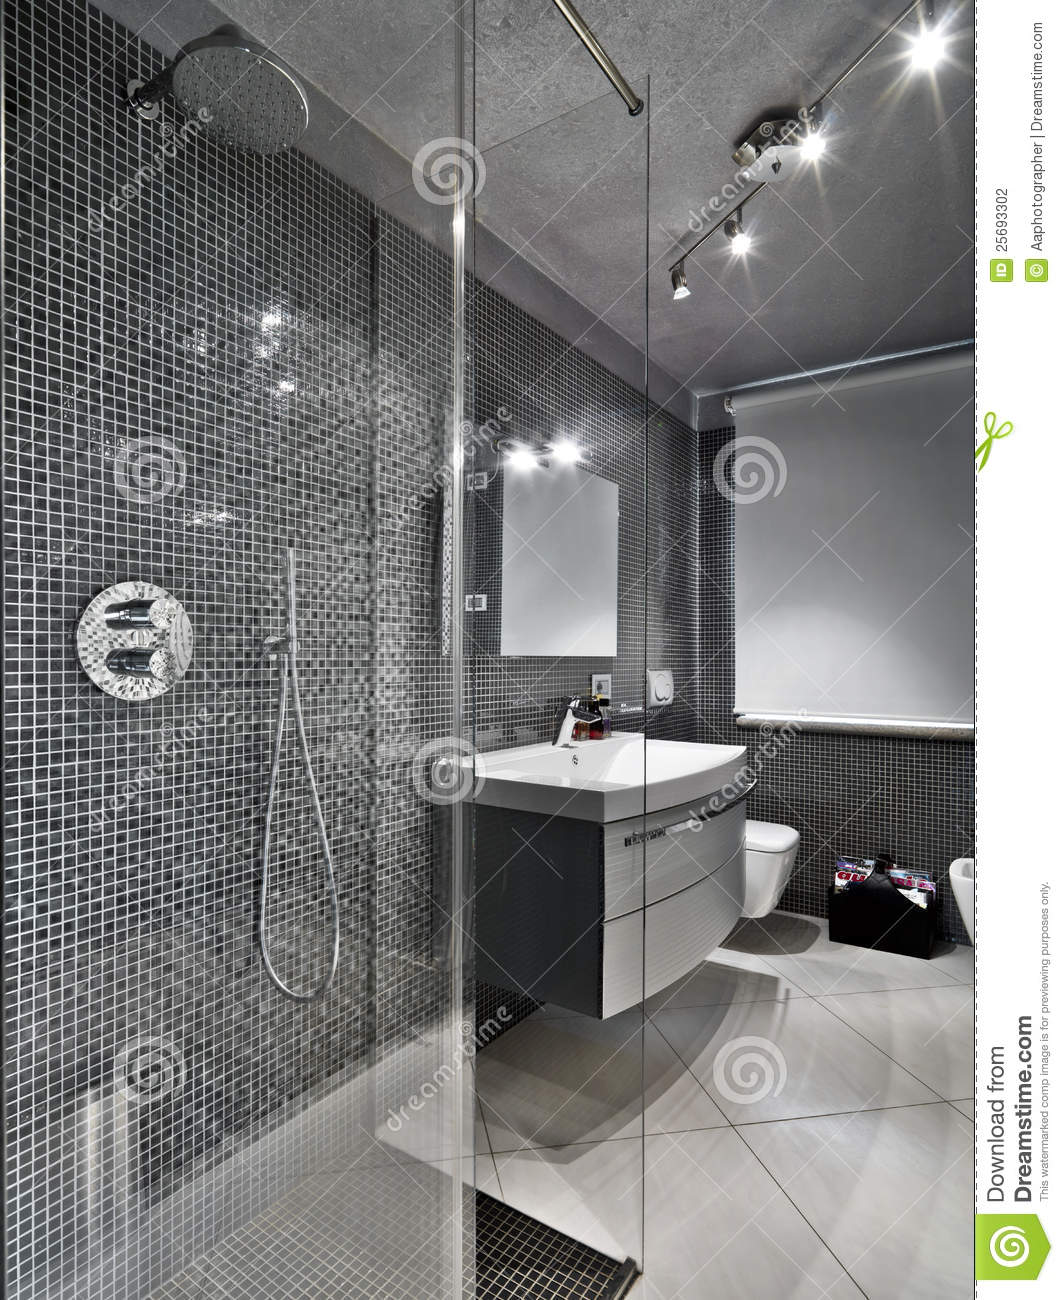 Modern Bathroom With Glass Shower Cubicle Stock Photo - Image of ...